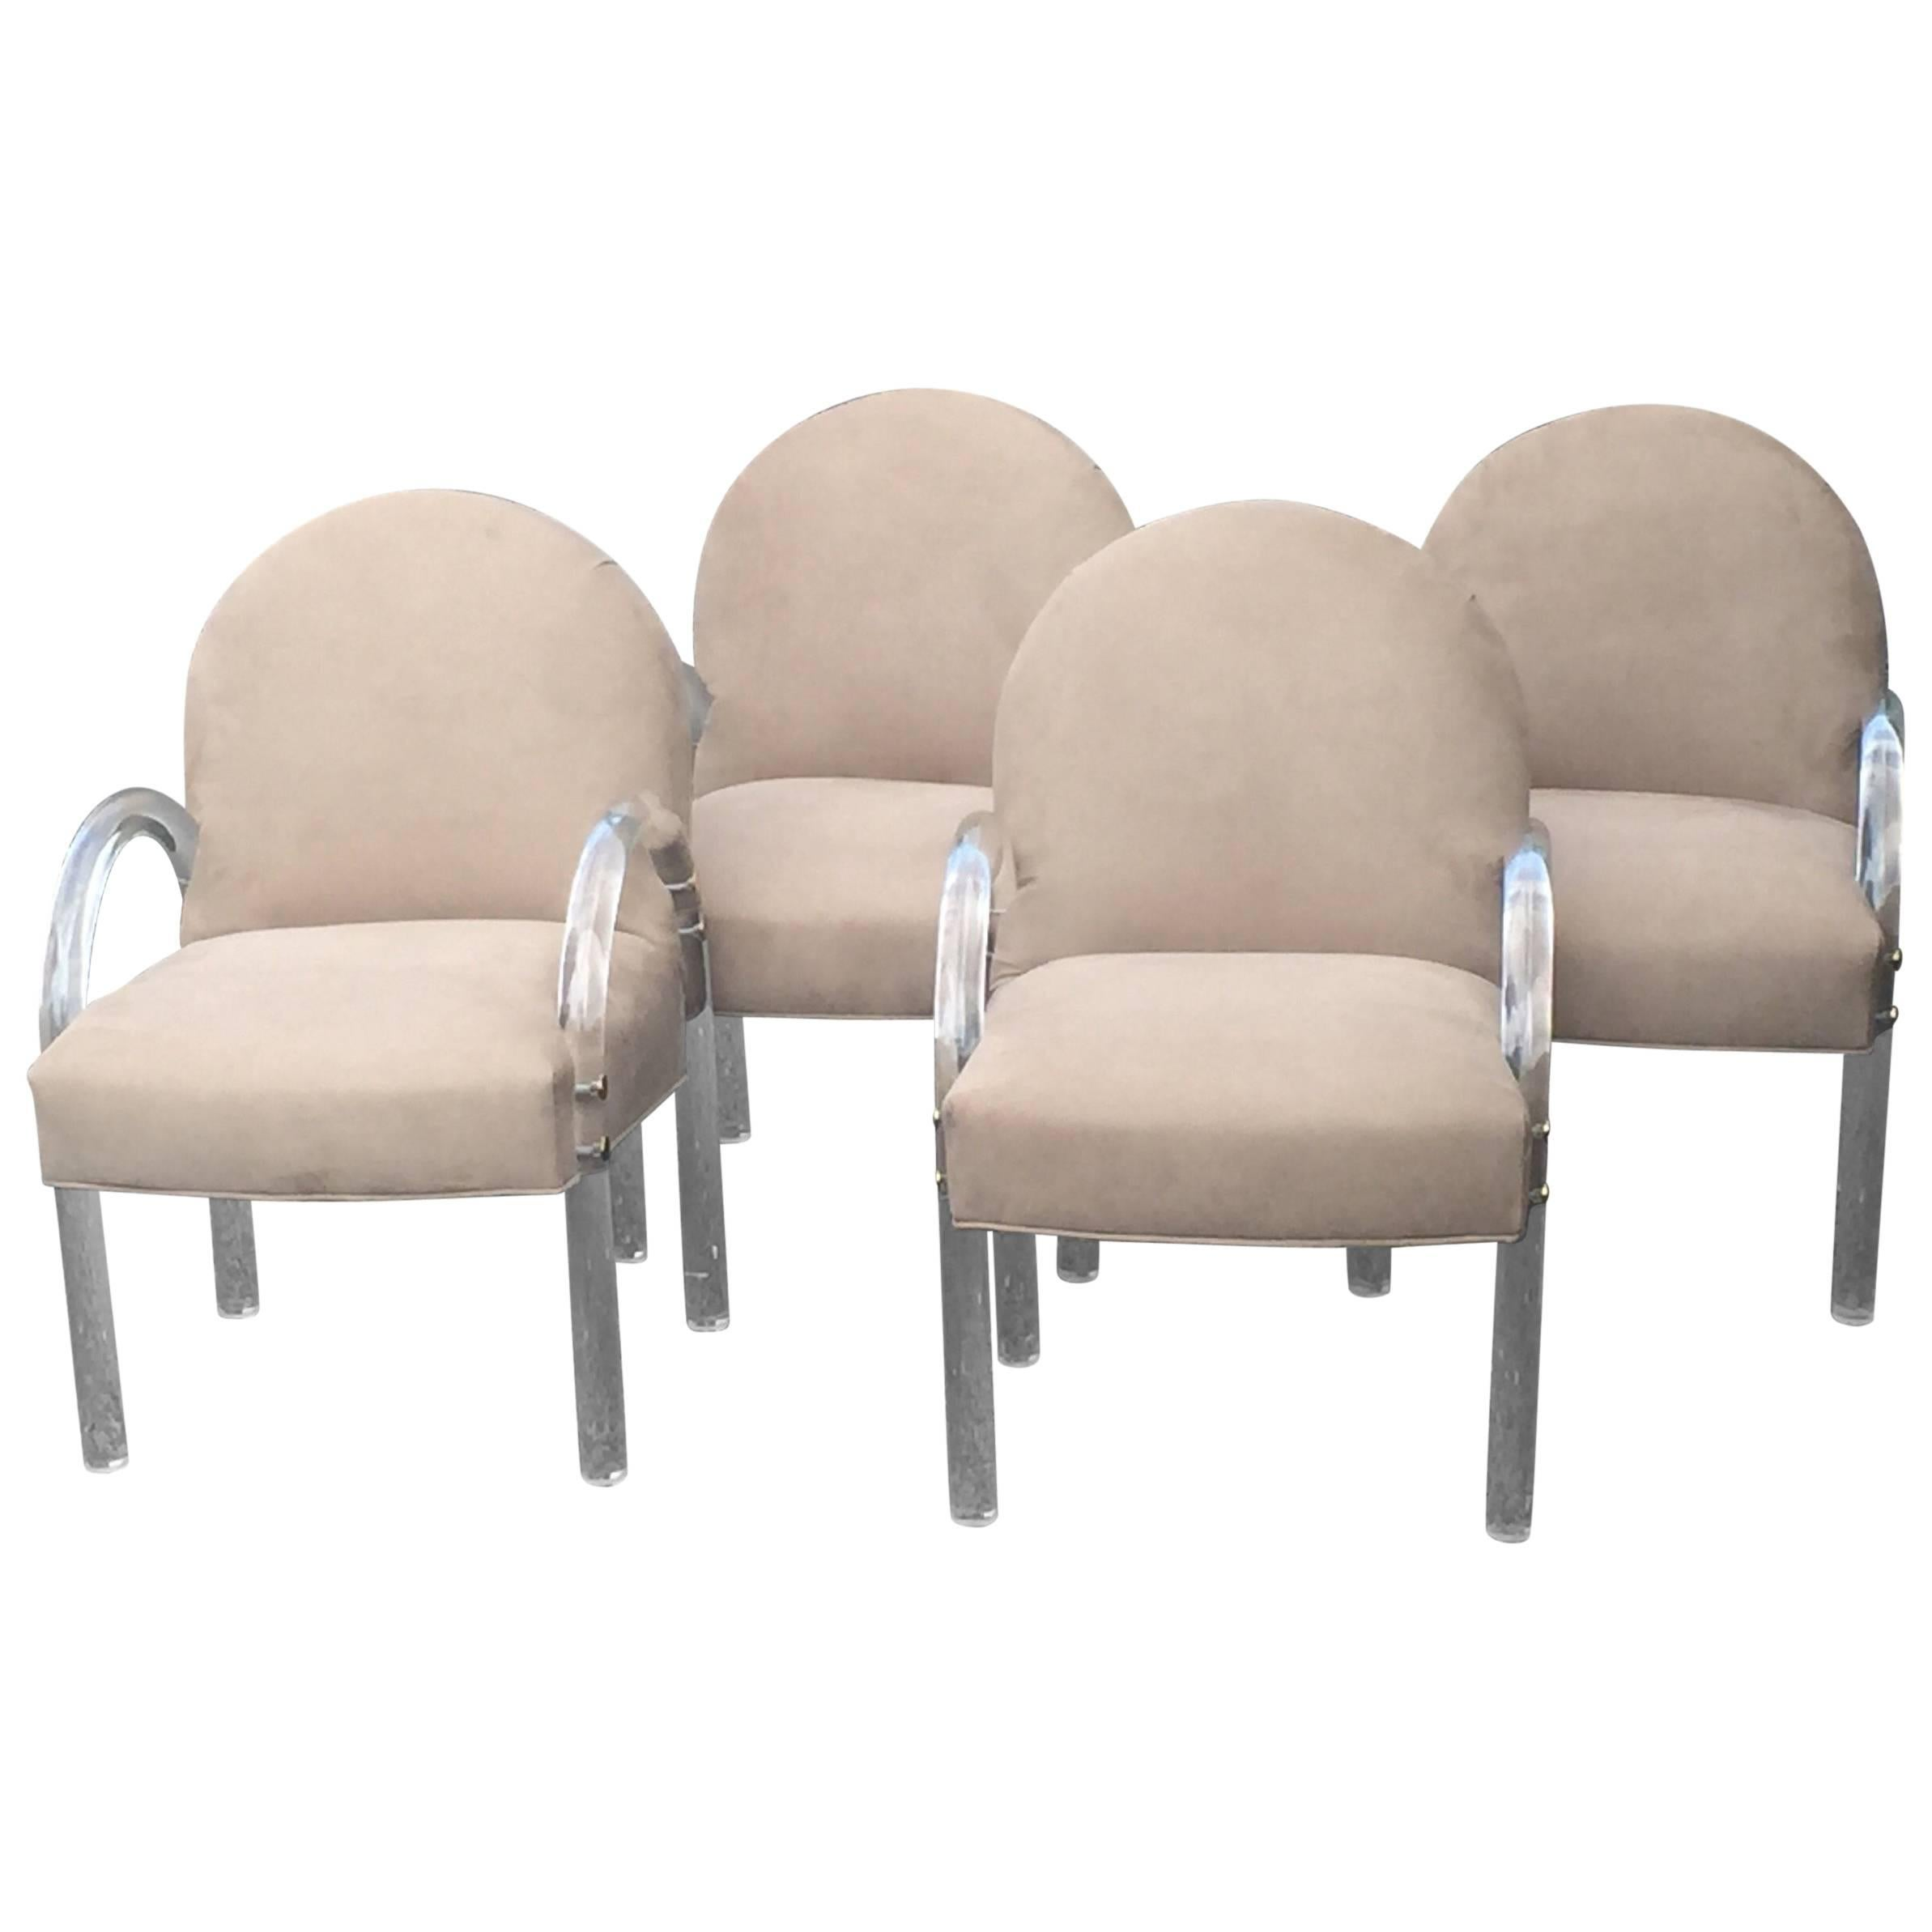 set of four classic midcentury modern lucite and upholstered armchairs